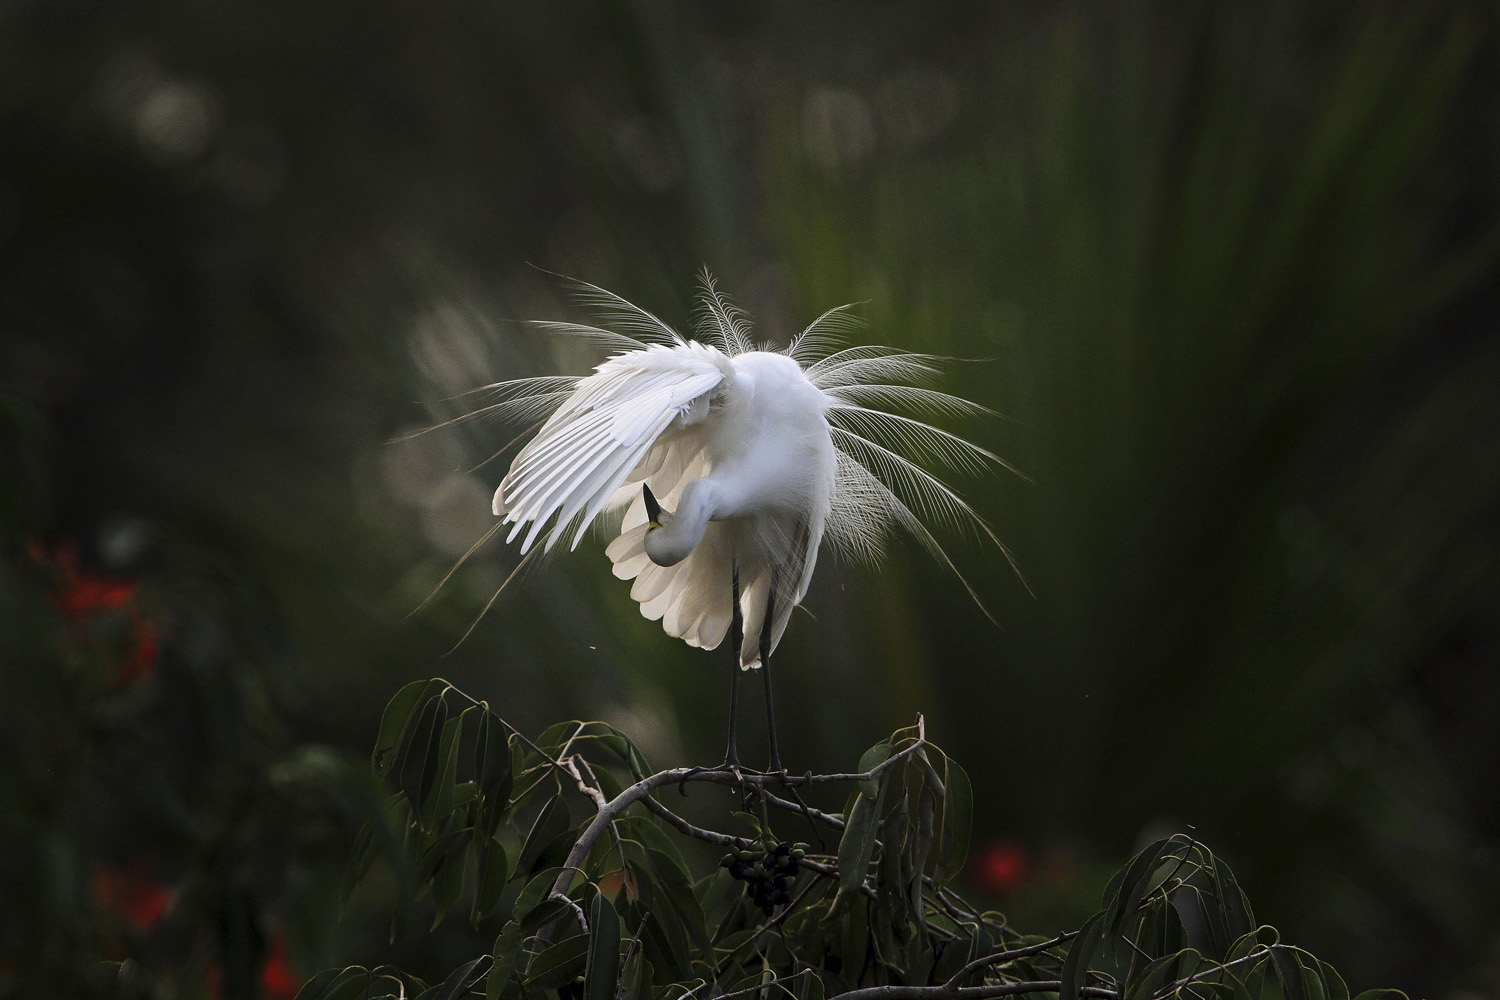 June 4, 2014. An egret preens itself as it stands on a branch along the River Brahmaputra on the eve of World Environment Day in Gauhati, India.